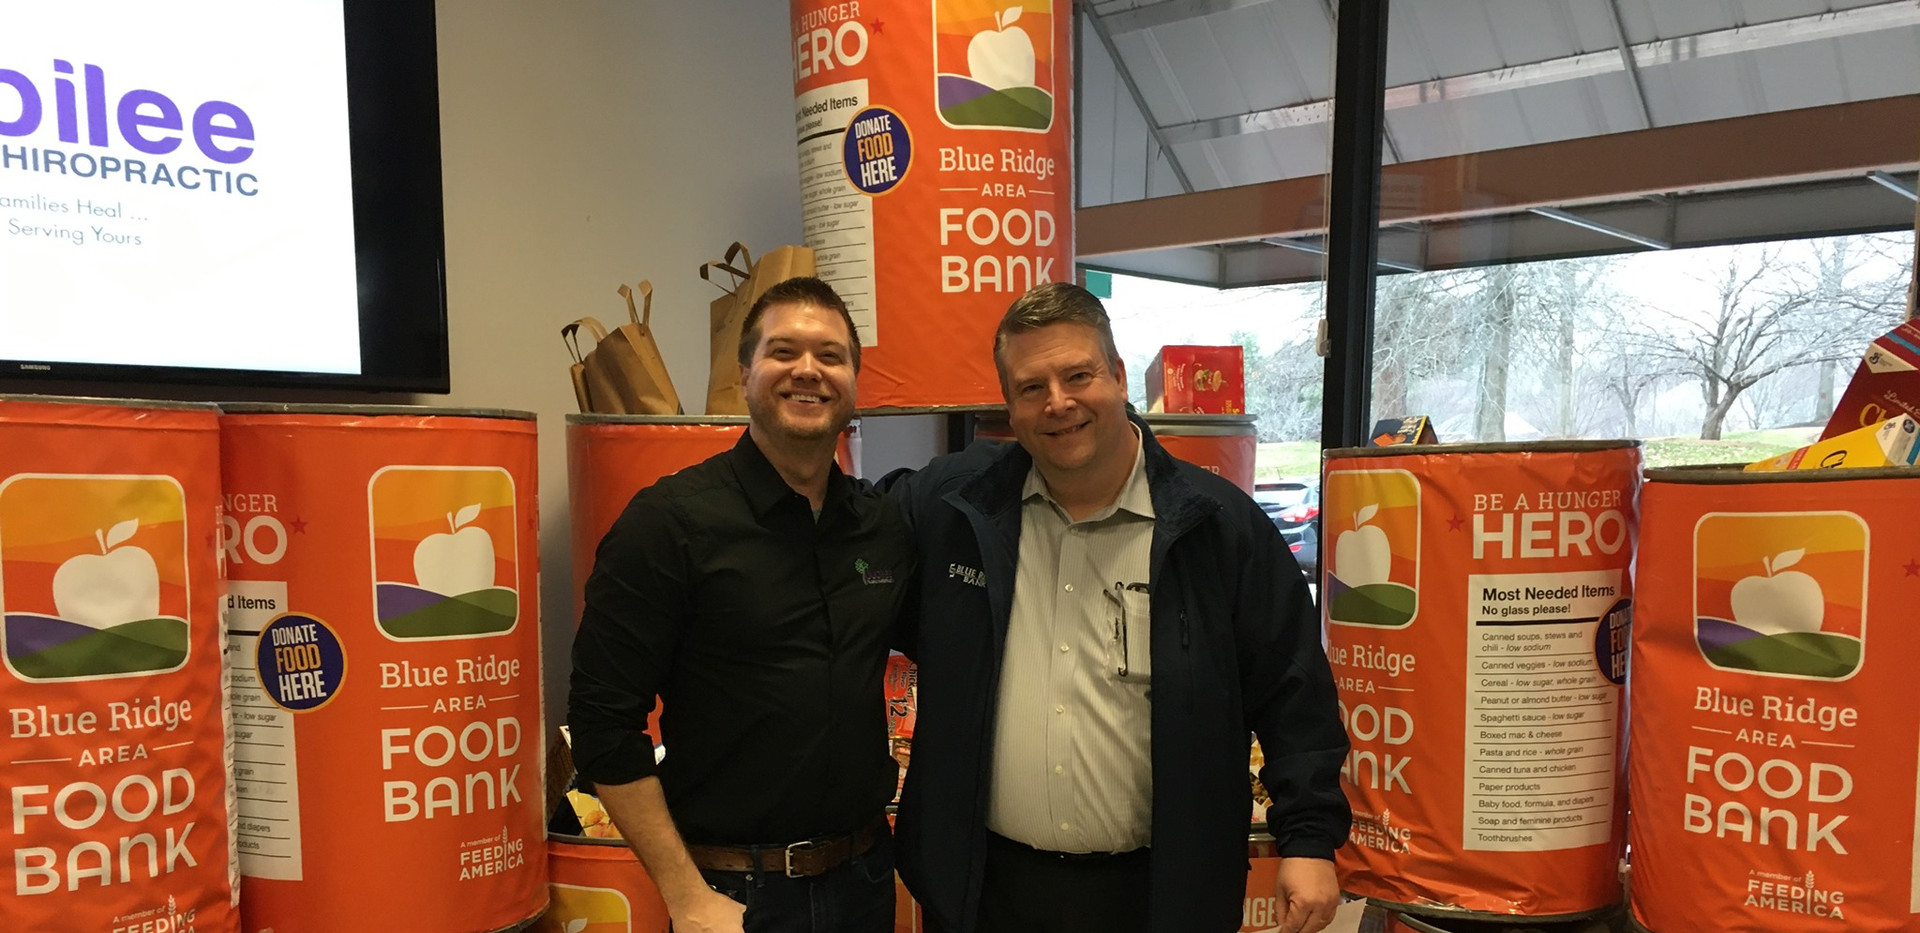 Jubilee Family Chiropractic 2020 Blue Ridge Food Drive. 021